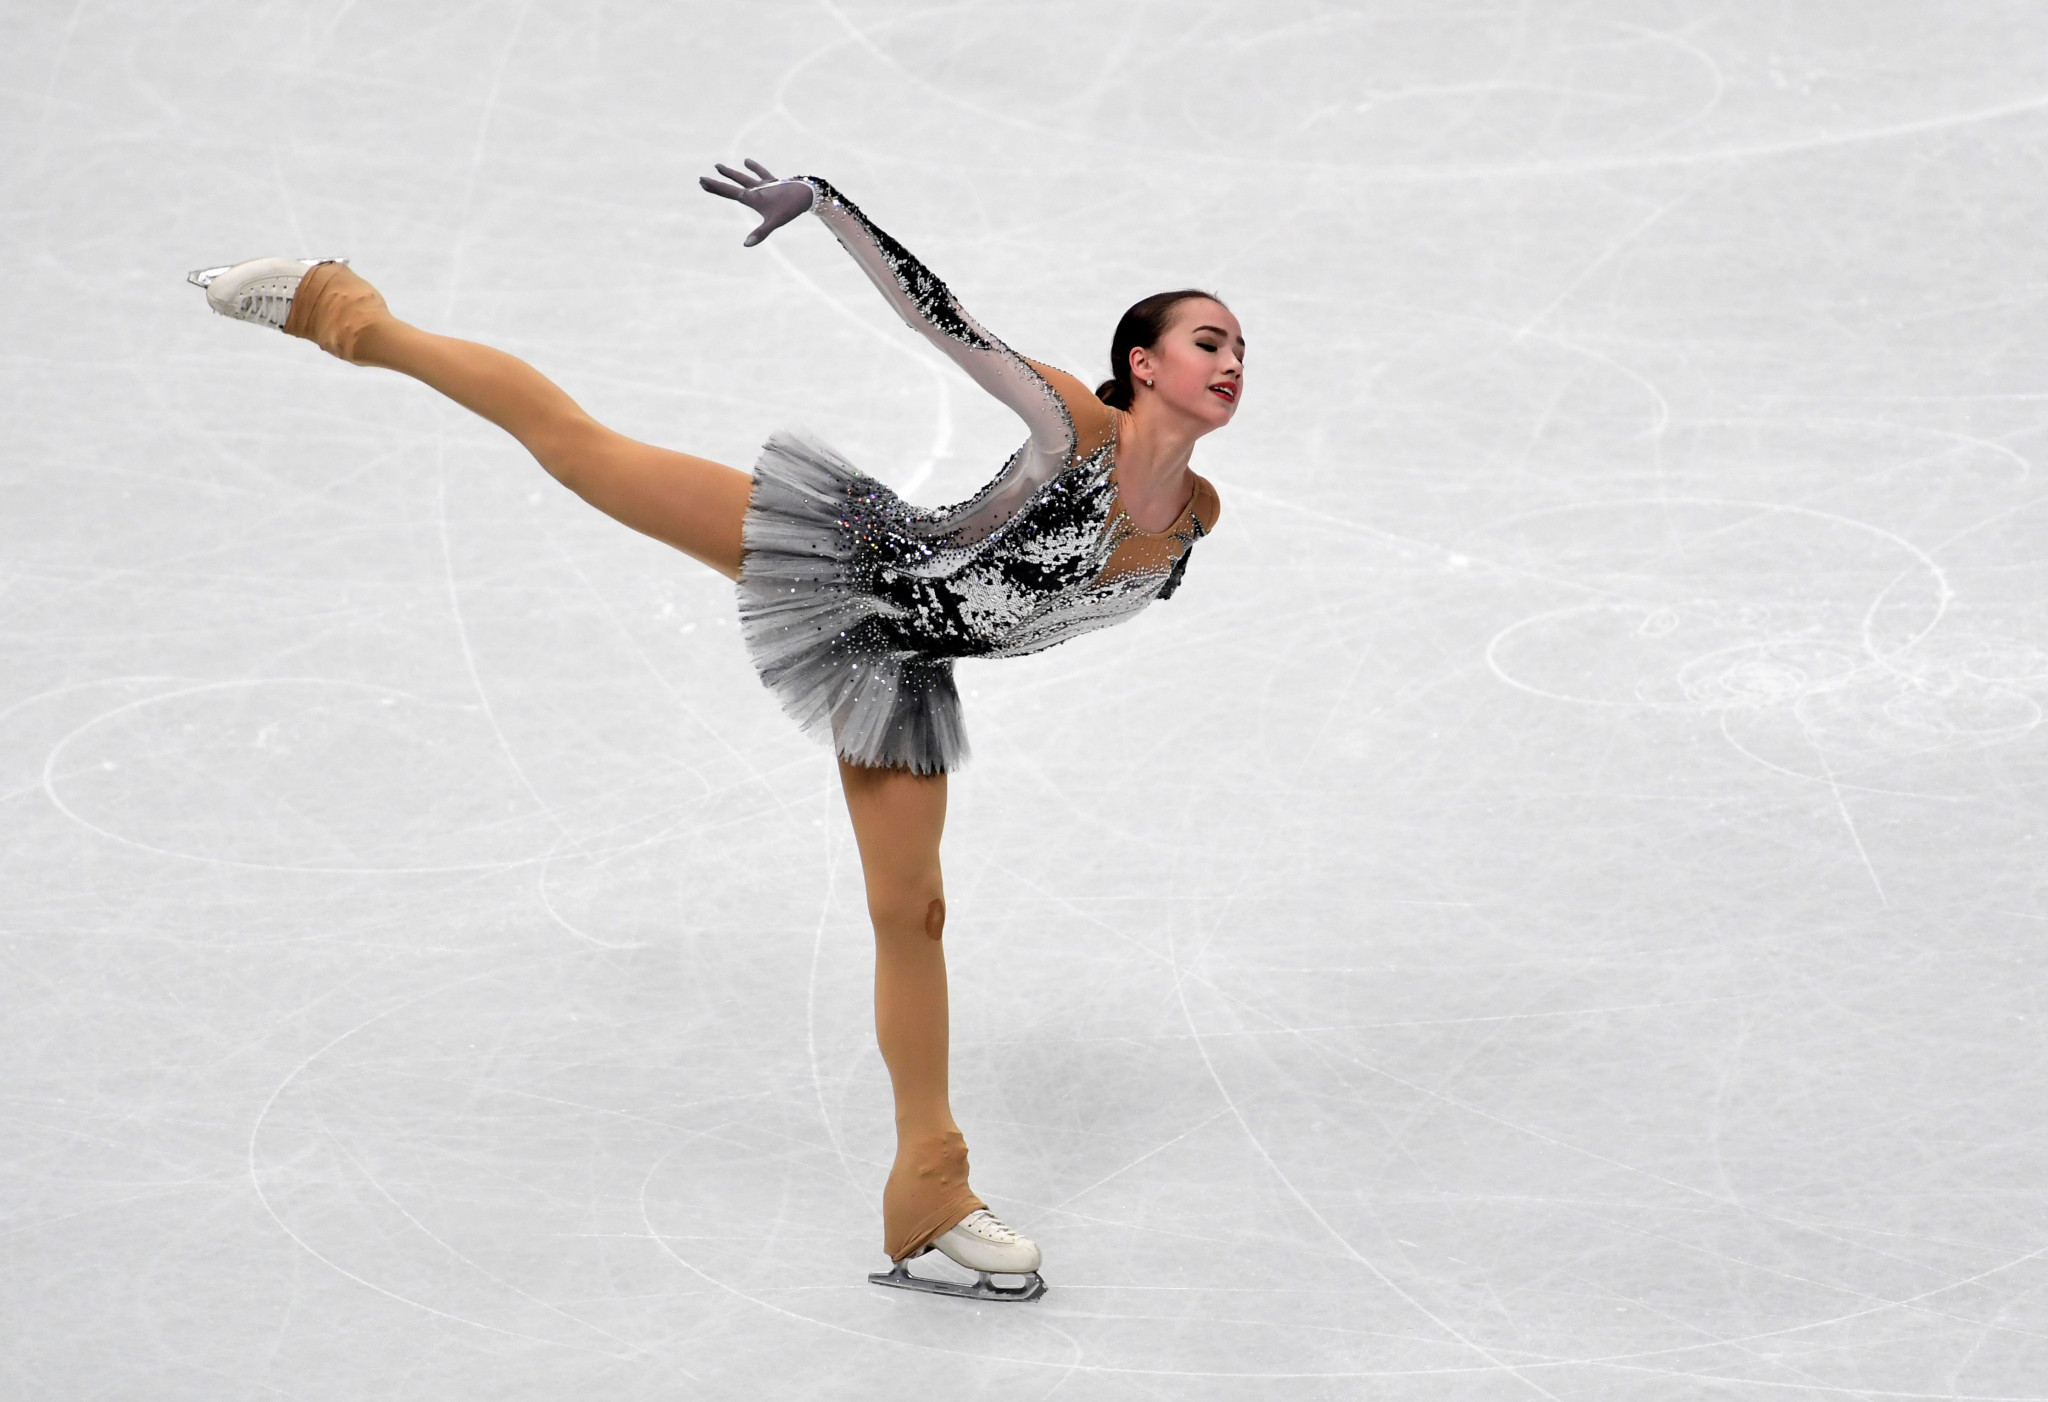 Alina Zagitova claimed she was using her World Championship disappointment as motivation ahead of her season ©Getty Images